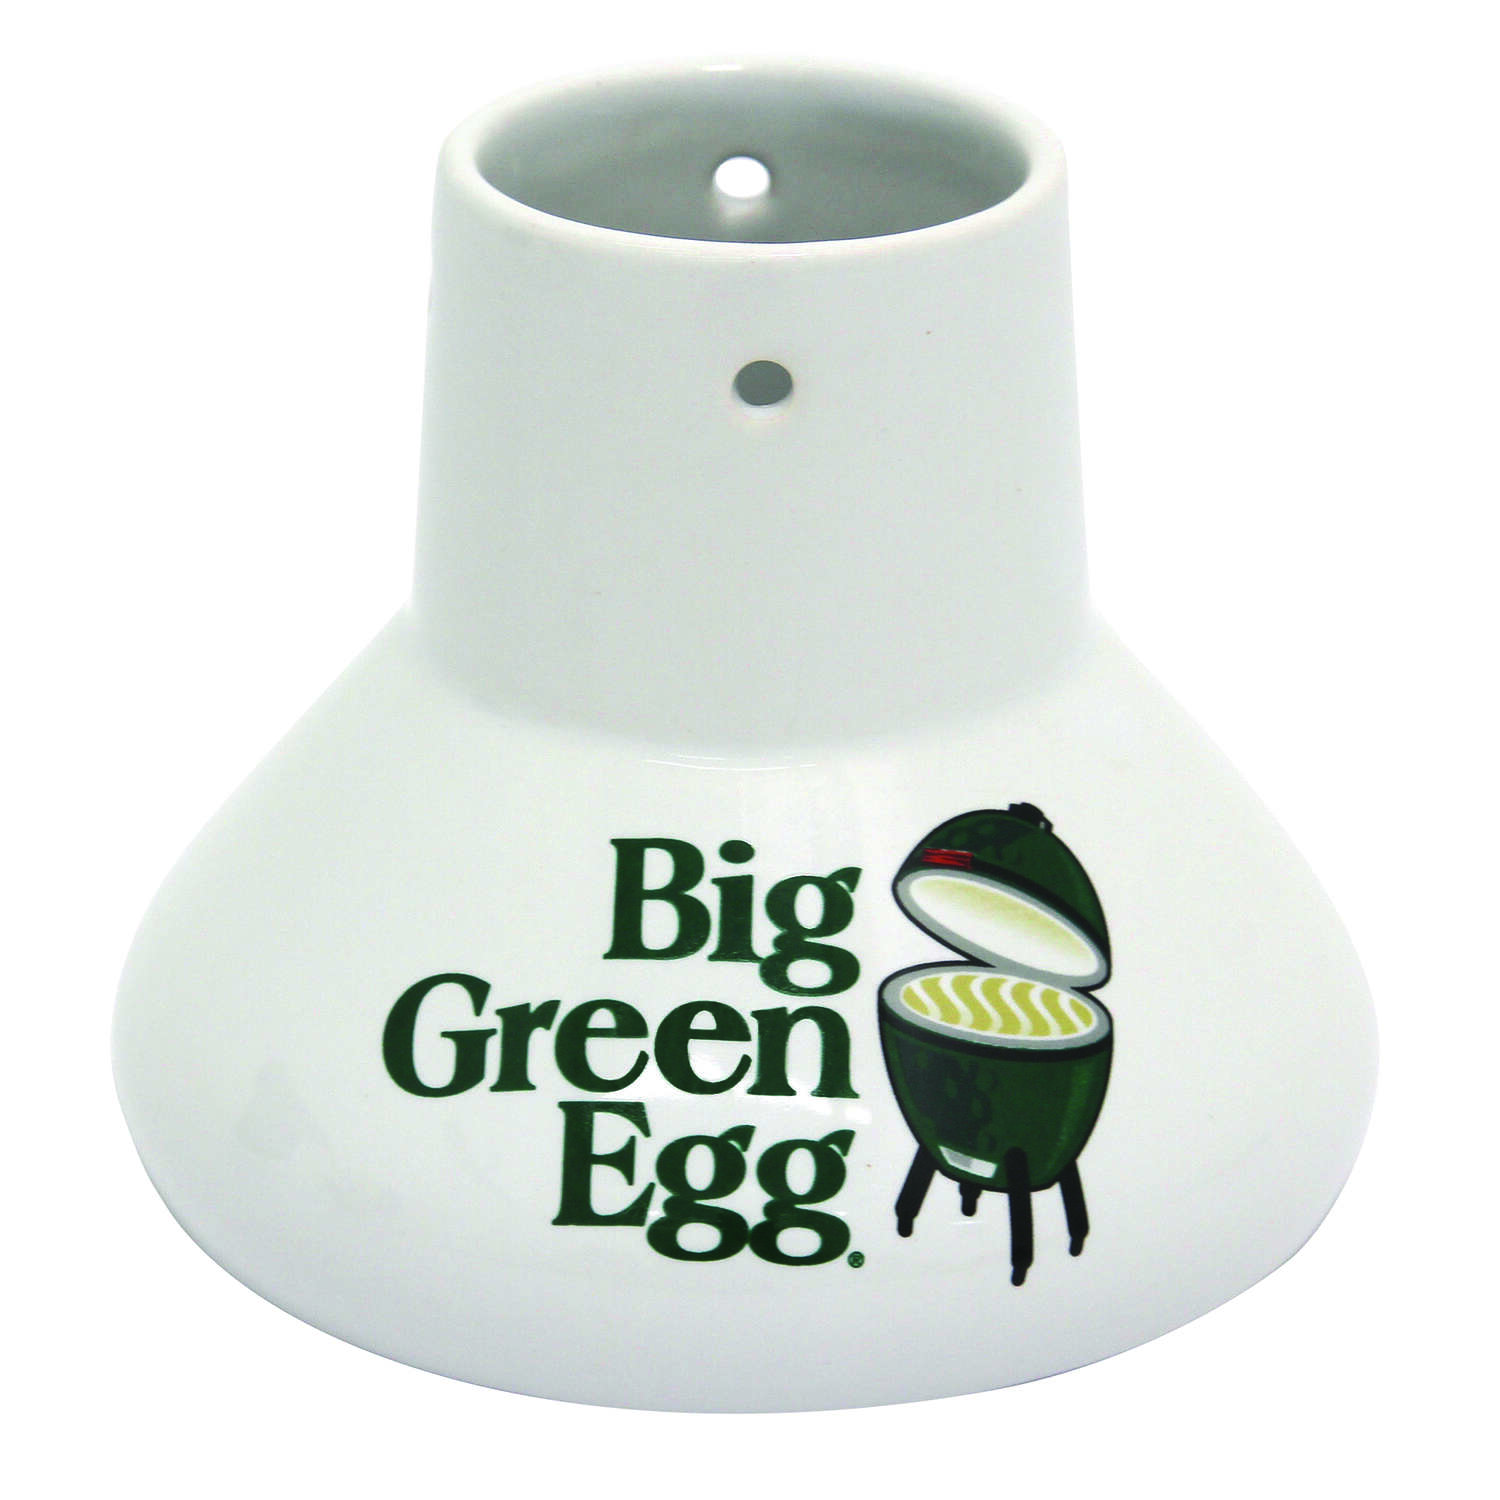 Big Green Egg  Poultry Roaster  5.25 in. L x 5.25 in. W